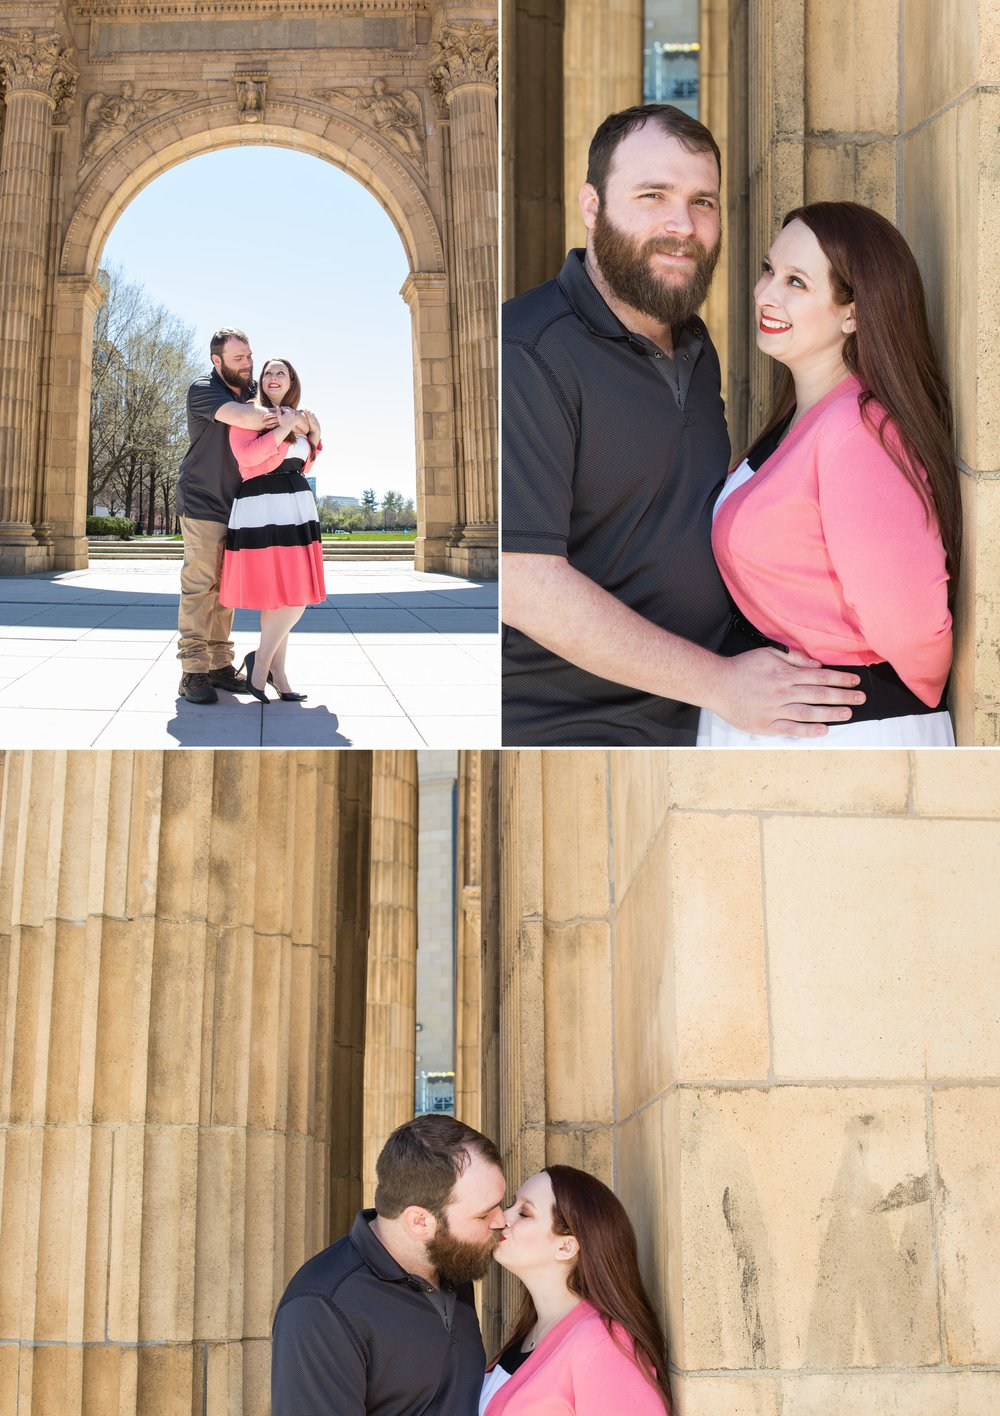 Downtown-Columbus-Ohio-Engagement-Portrait-Session-Bicentennial-Park-McFerson-Commons-Muschlitz-Photography-001.JPG